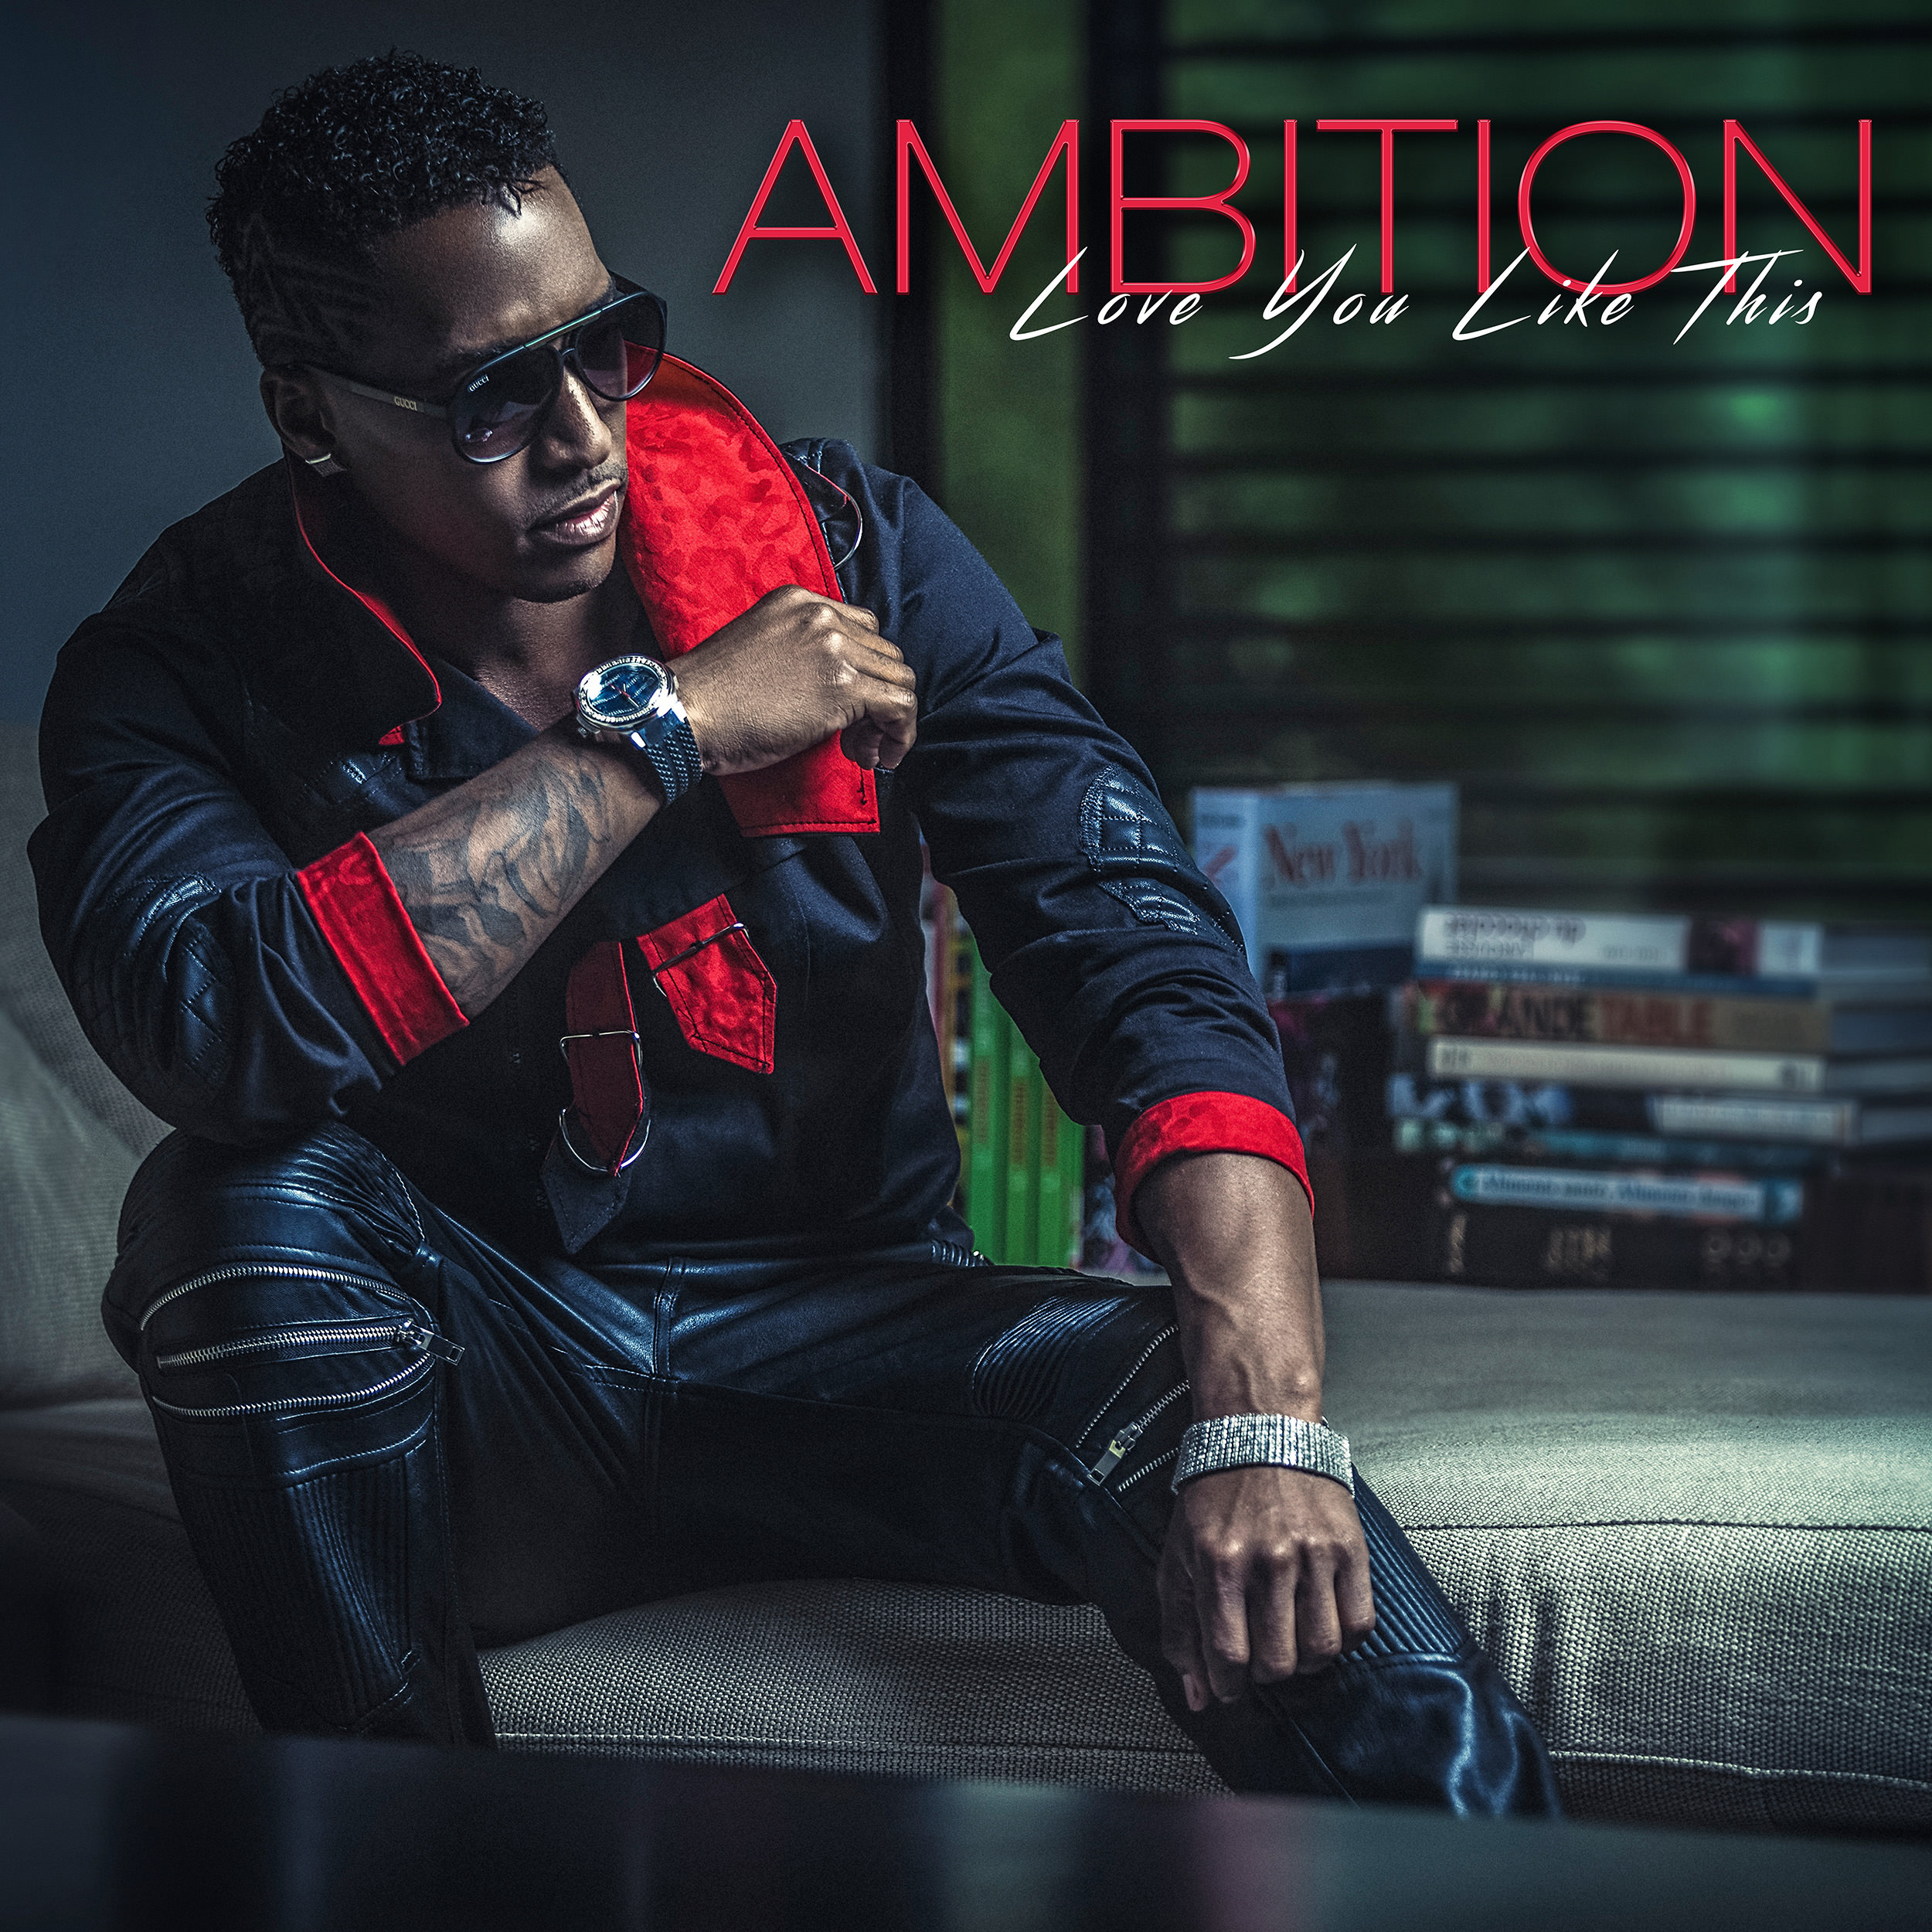 Ambition's new single Love You Like This is now available on all major digital stores worldwide!